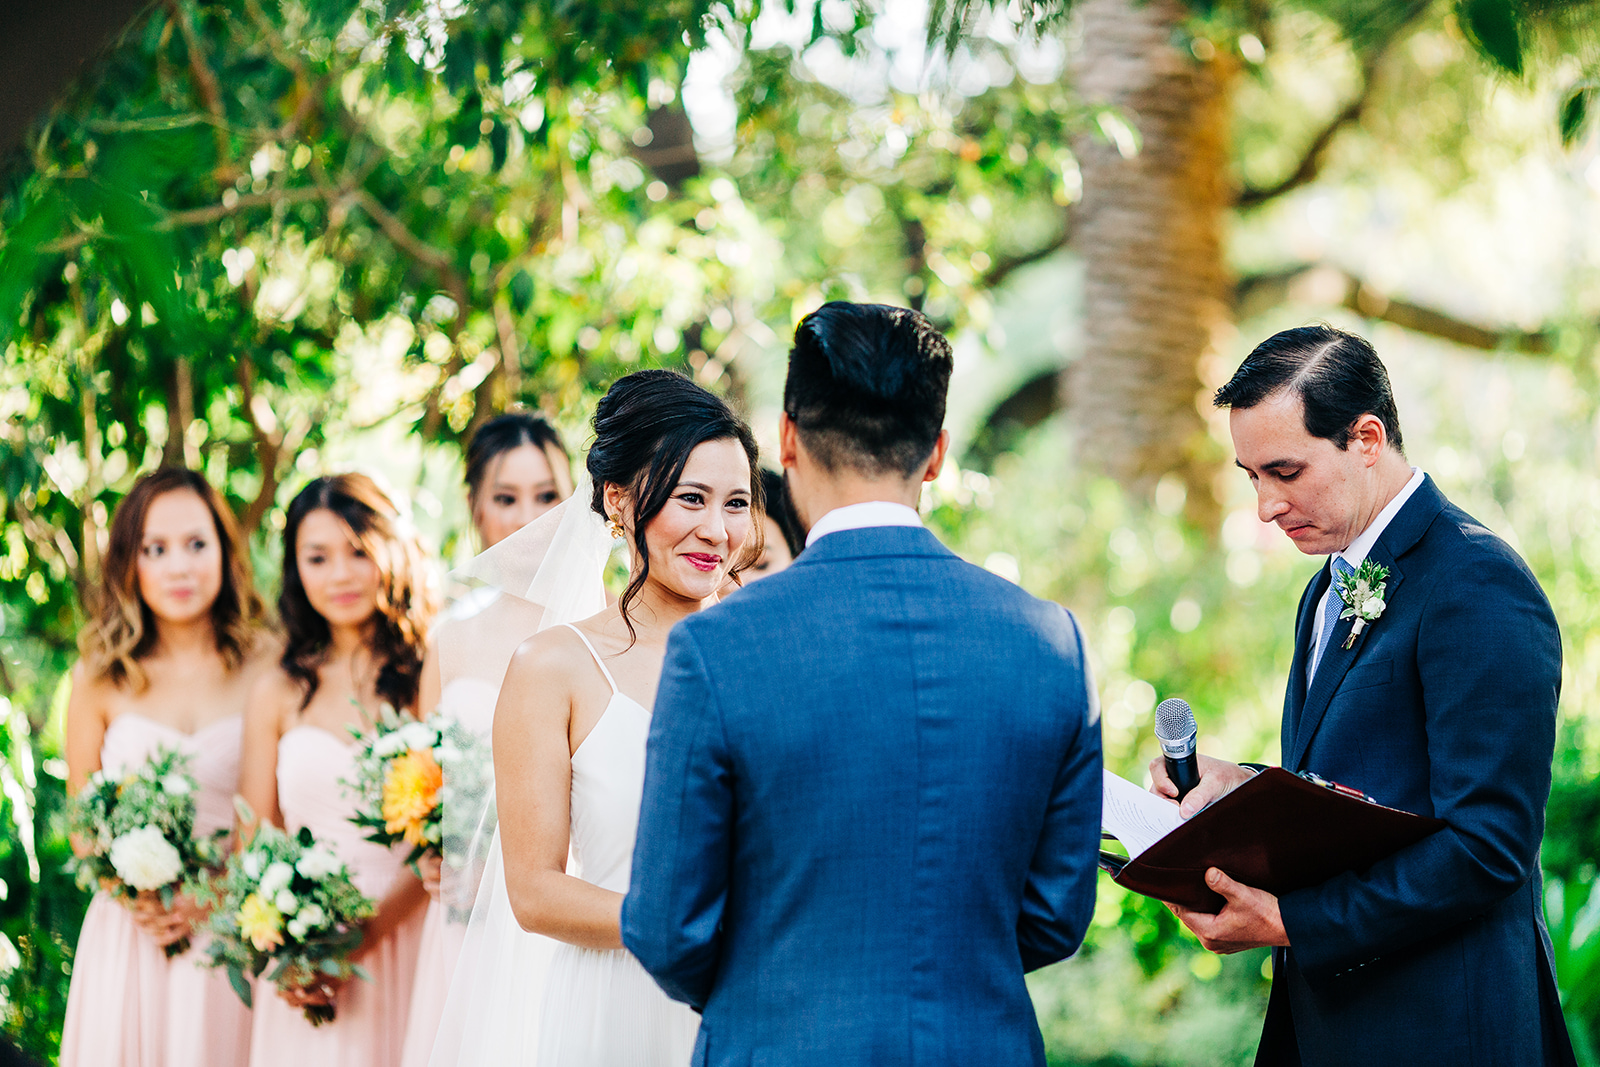 Los-Altos-History-Museum-Wedding_Orange-County-Wedding-Photographer_Clarisse-Rae-Photo-Video_58